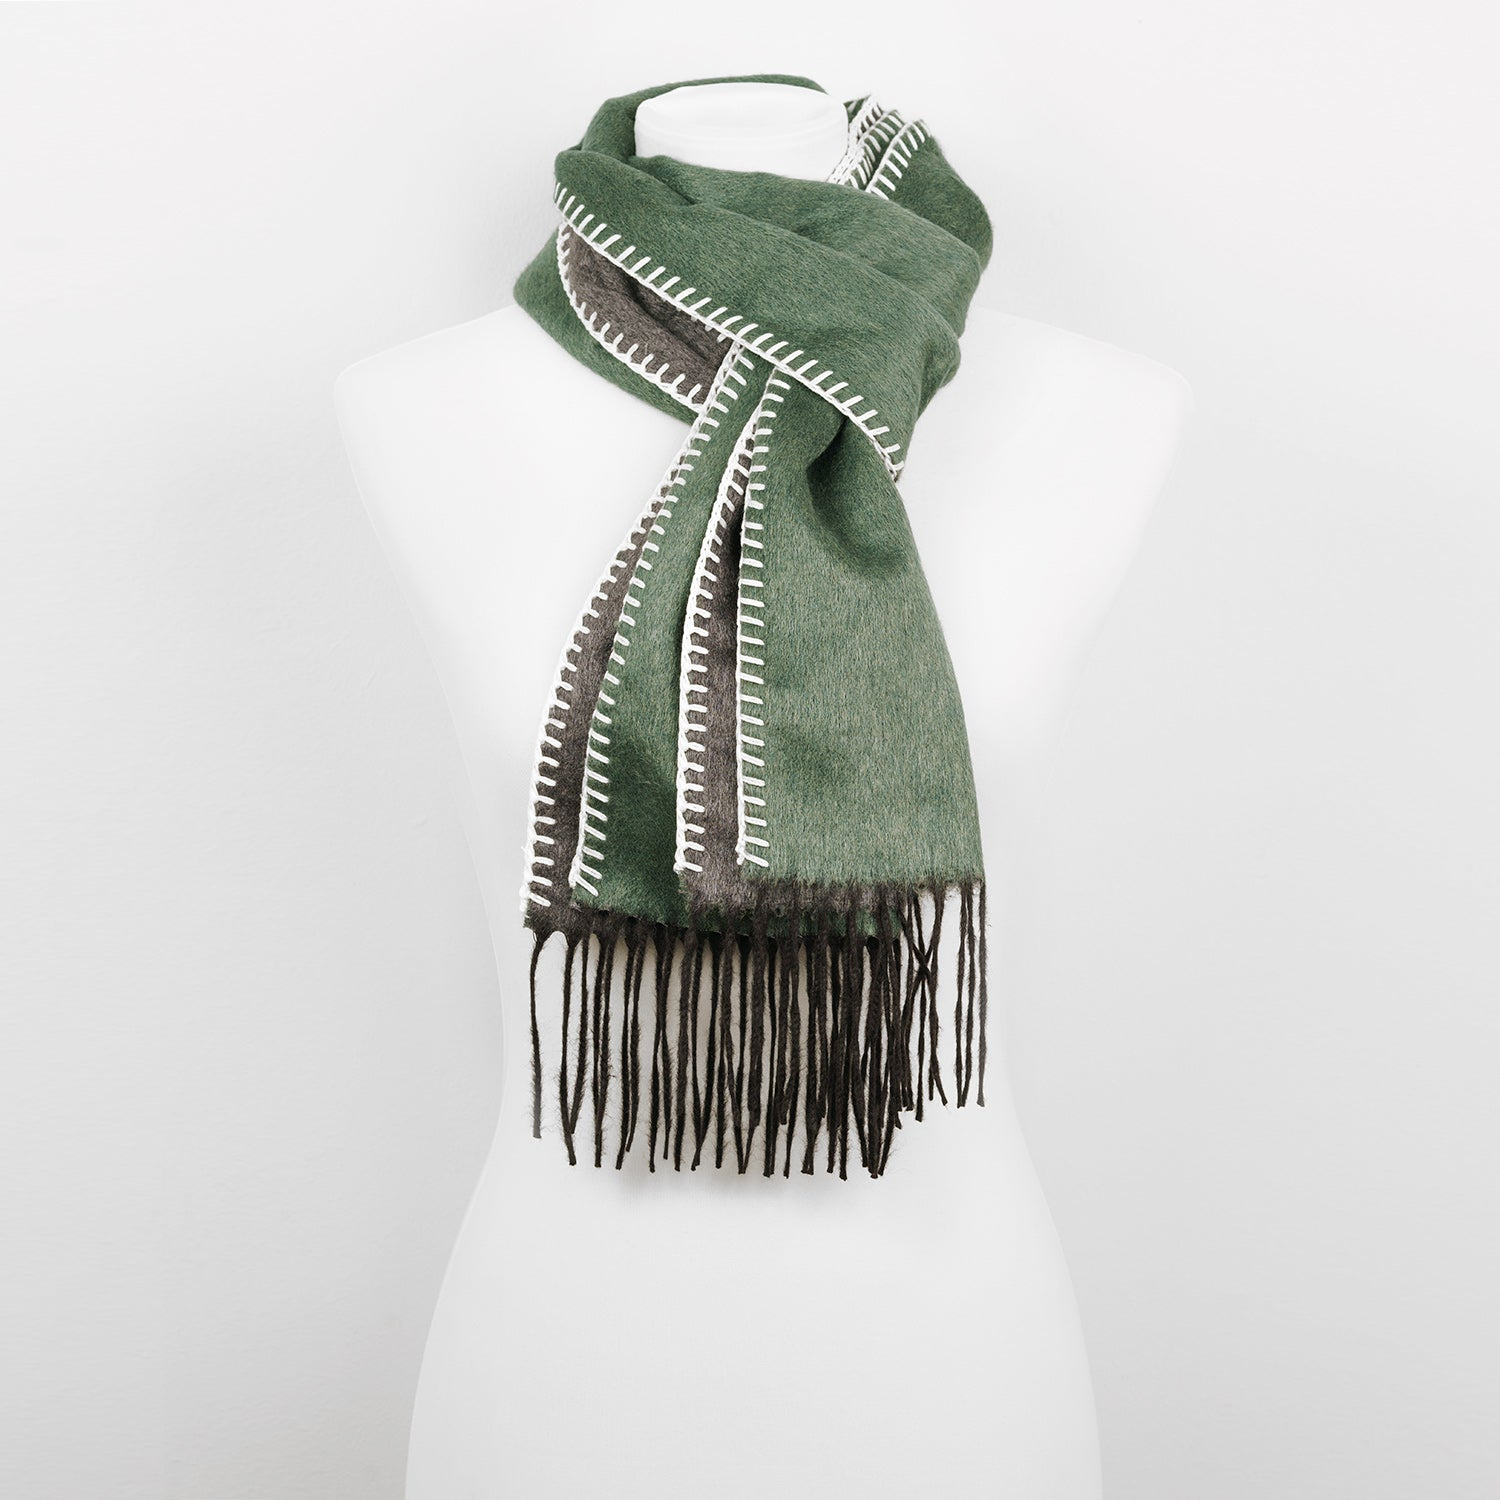 Doria & Dojola Roma Silk-Cashmere Scarf. 51% Silk 49% Cashmere 30 x 170 cm. 100% Made in Italy. Pictured: Olive Green with Grey.